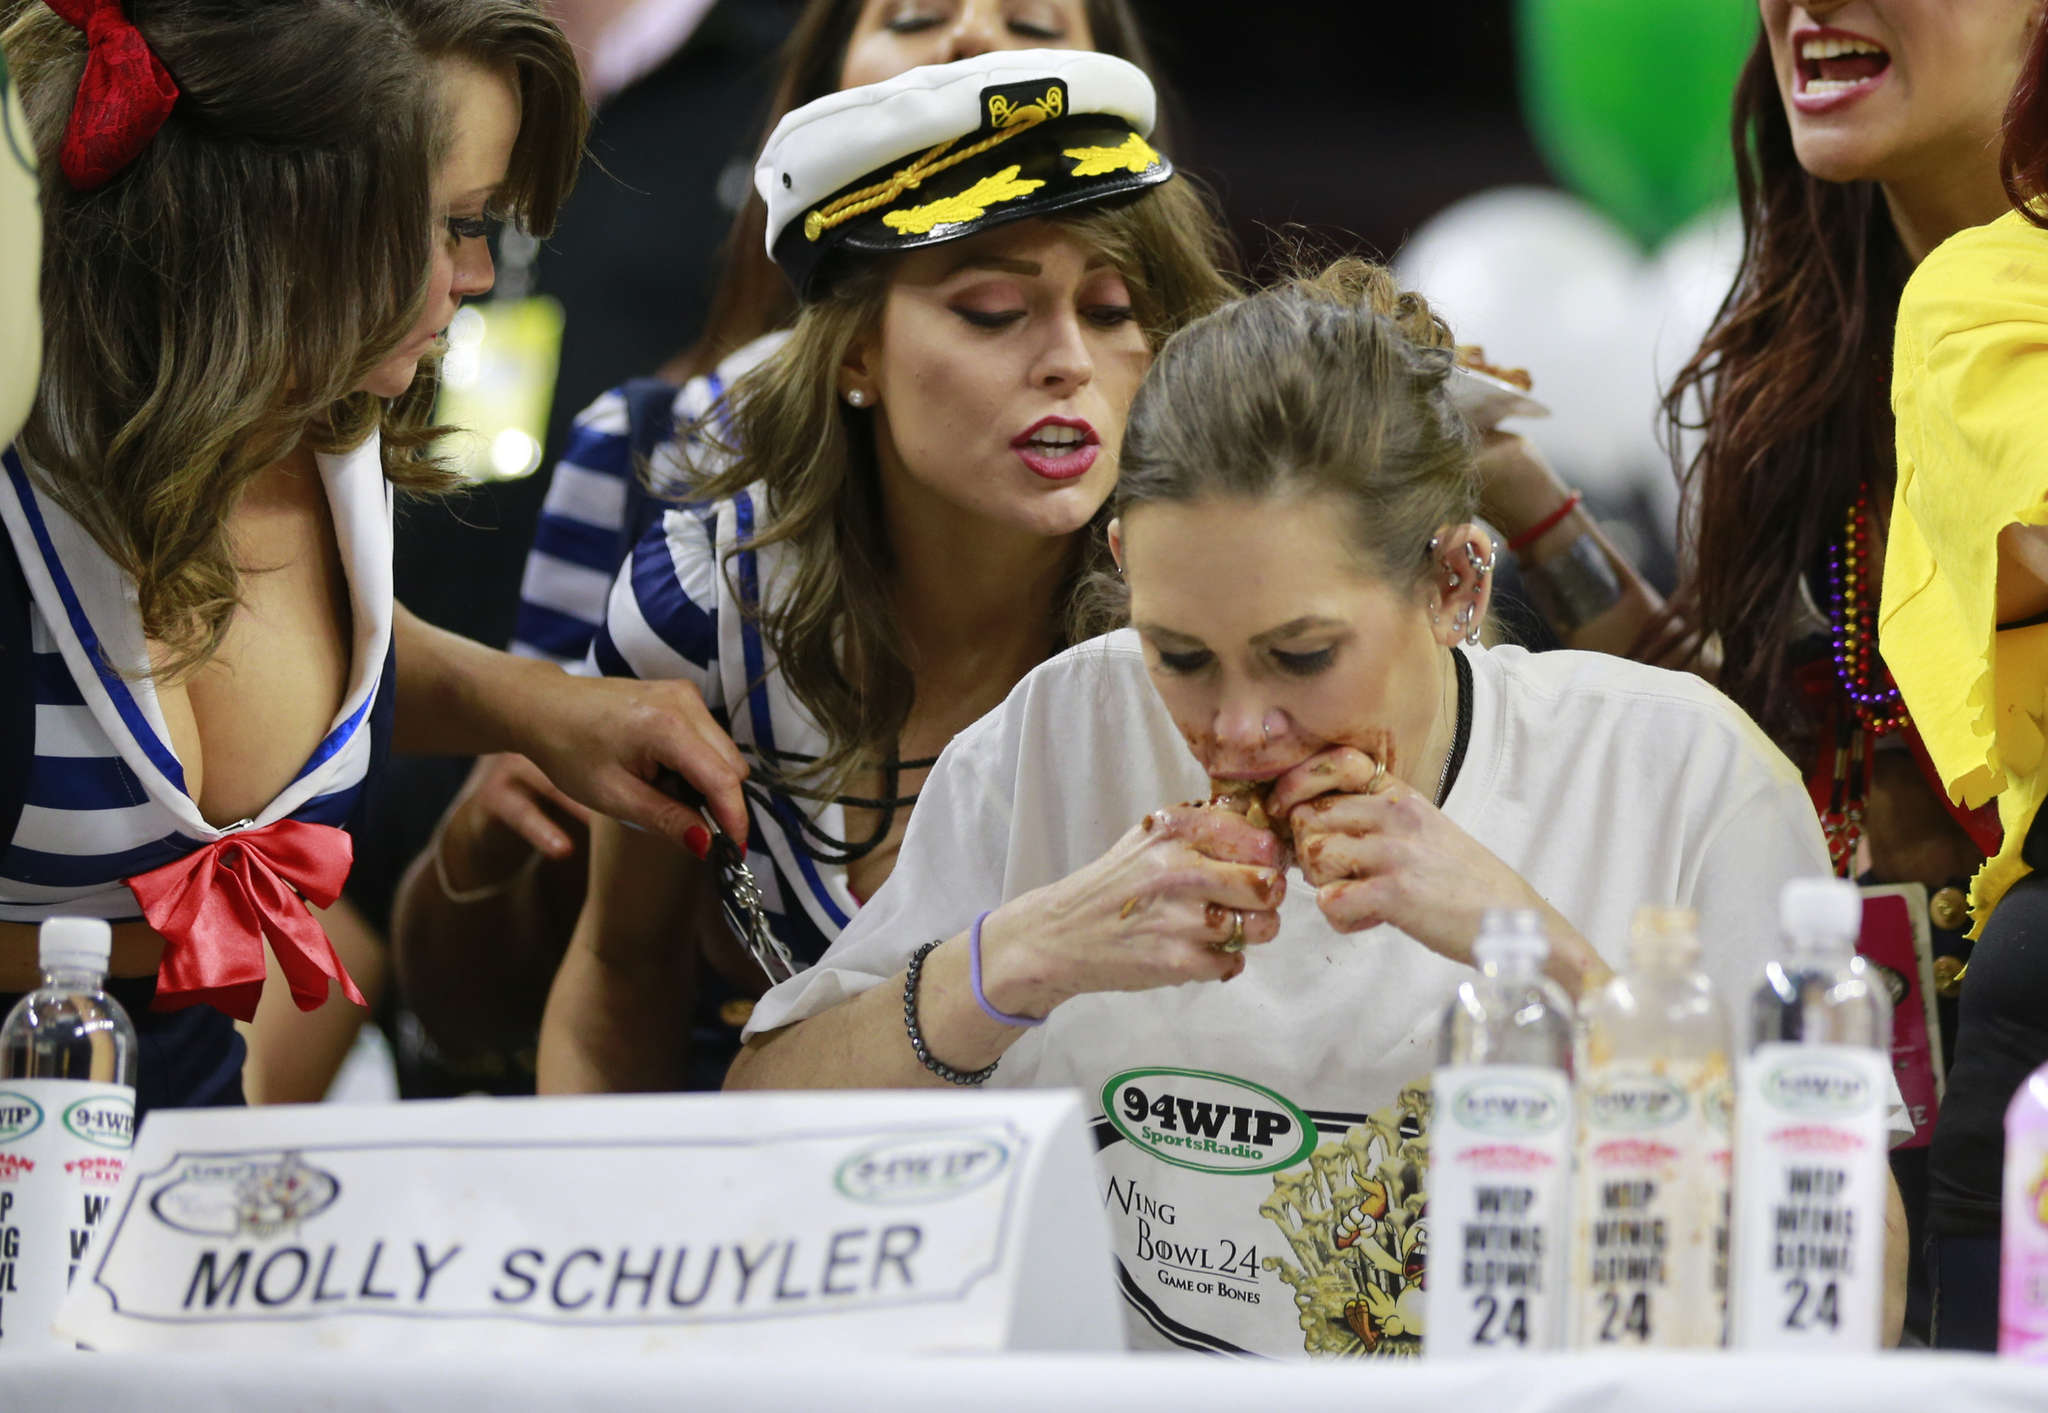 Molly Schuyler is the champion, with 429 wings, at Wing Bowl 24 on Friday at the Wells Fargo Center.